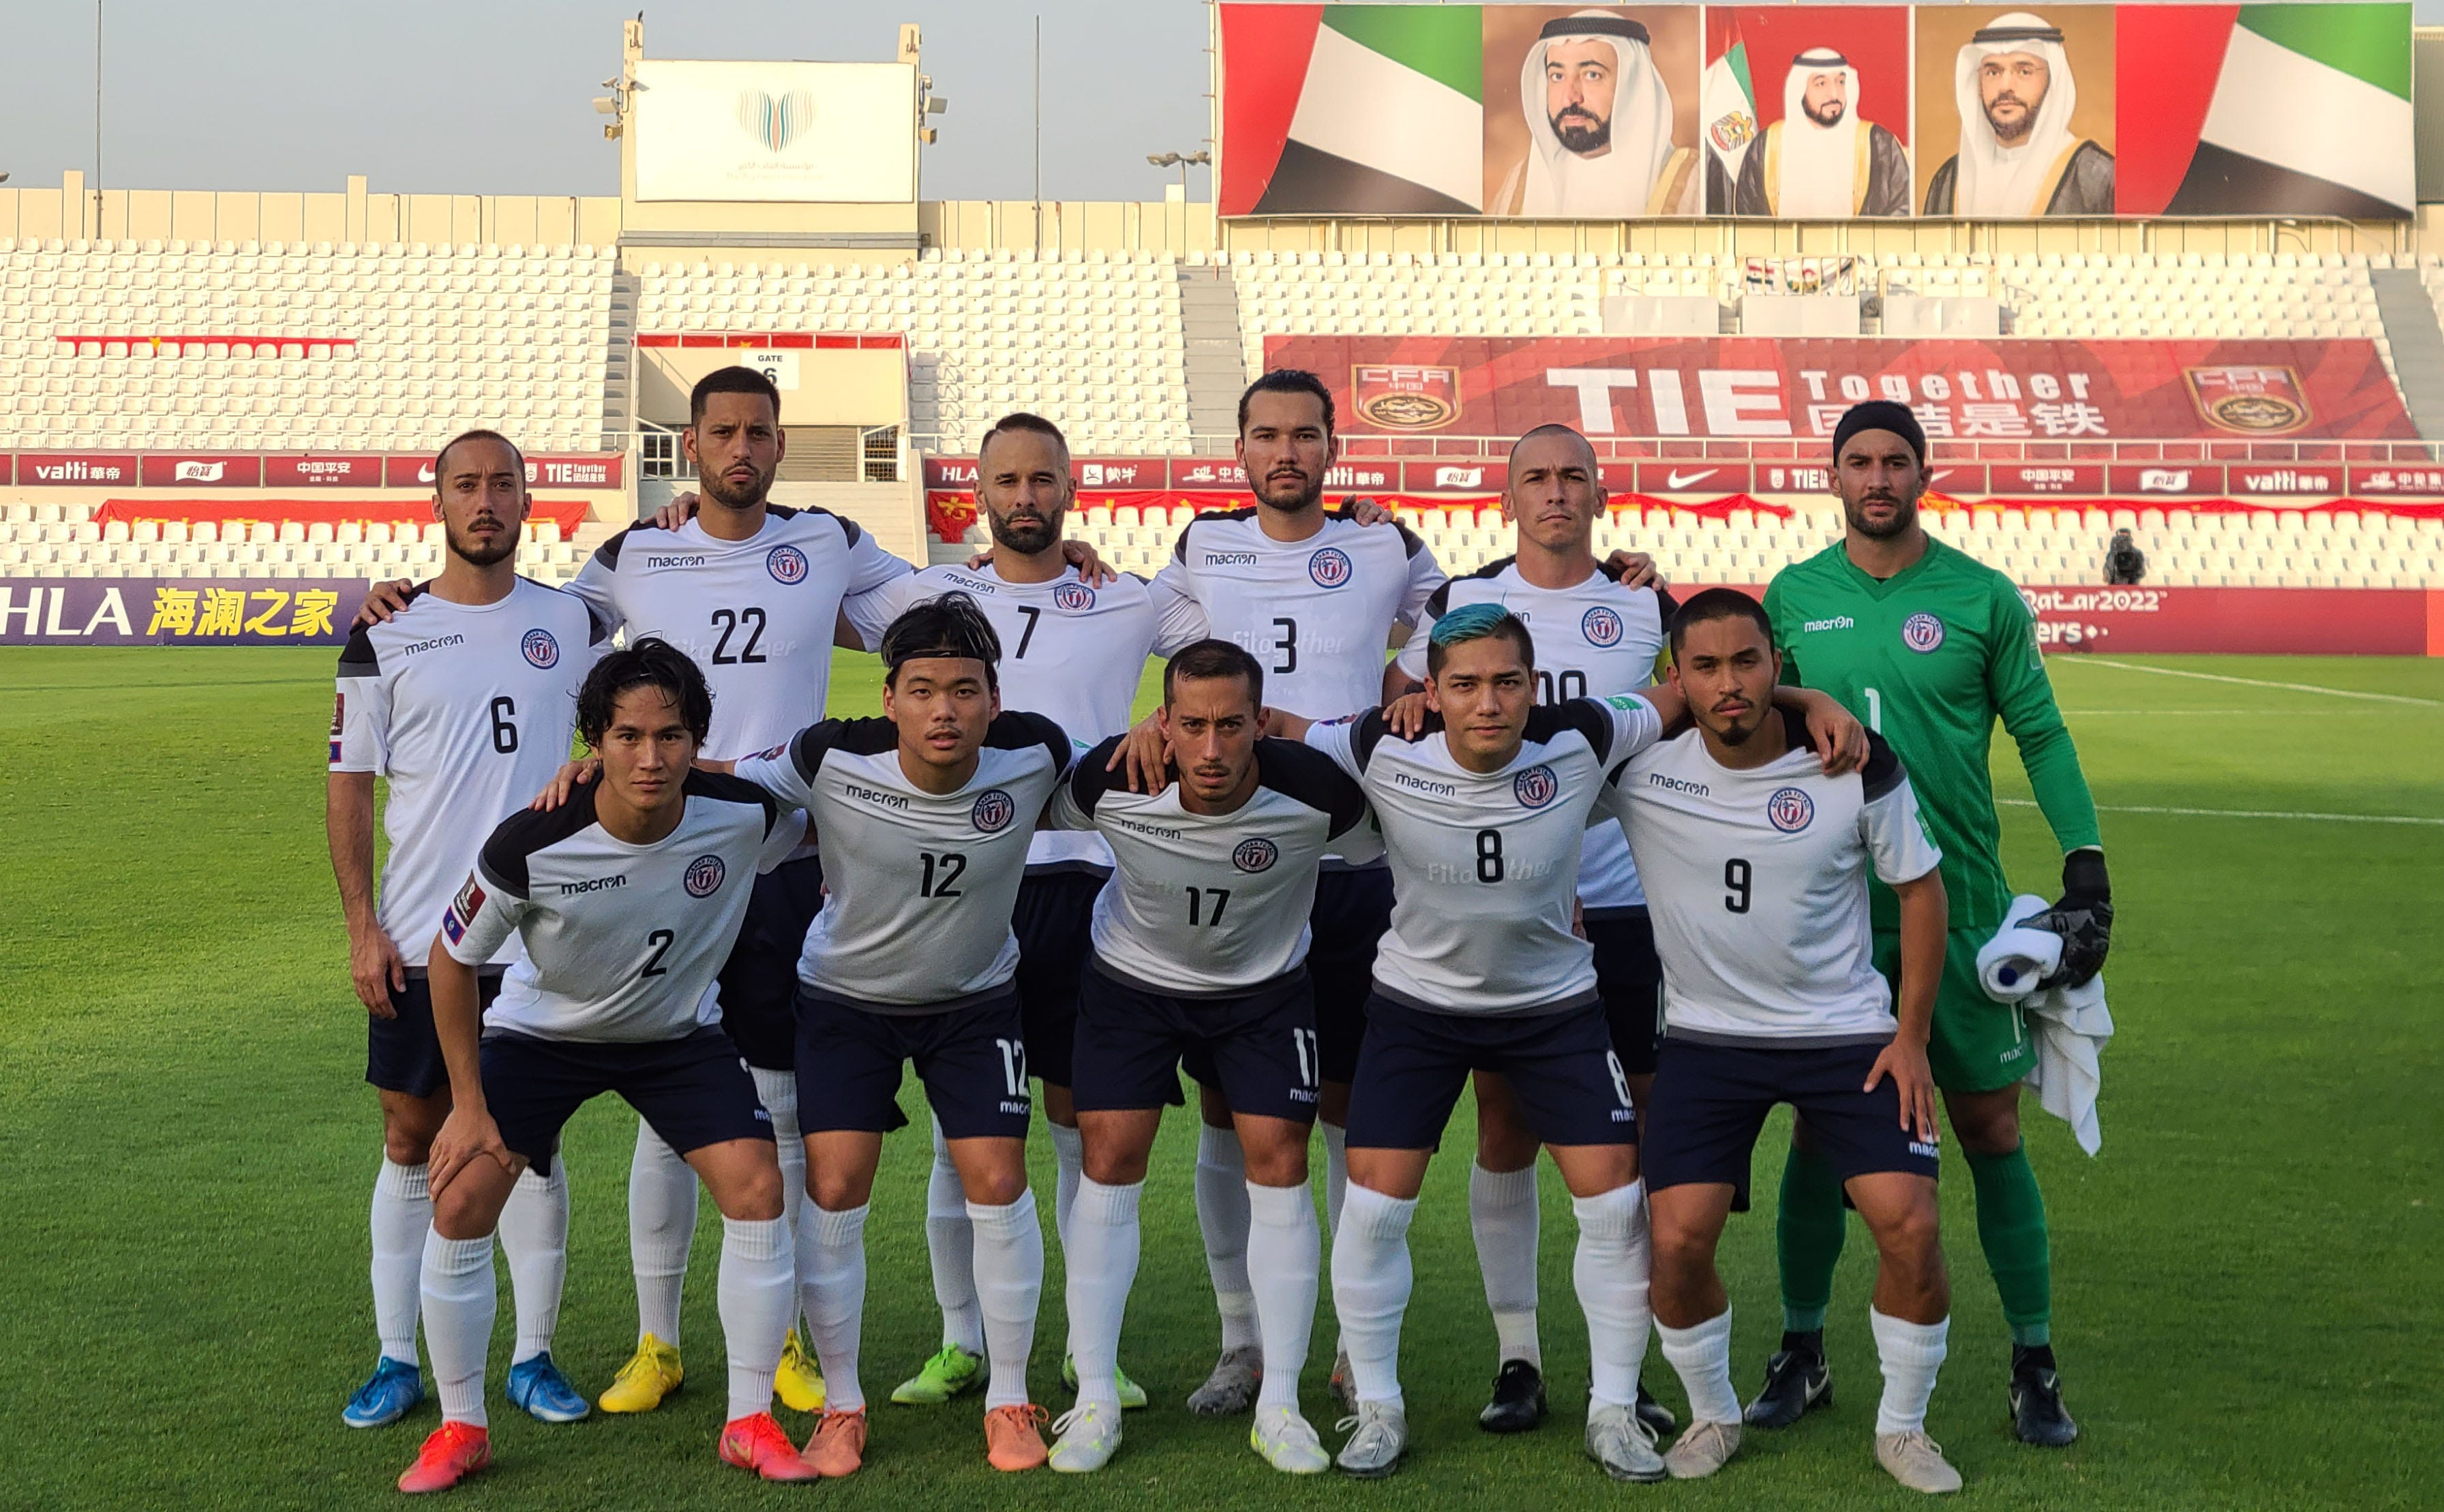 Guam's starting 11 players selected against Syria ahead of their Round 2 match of the FIFA World Cup Qatar 2022 and AFC Asian Cup China 2023 Asian Qualifiers at Sharjah Stadium in the United Arab Emirates June 7. From left: Isiah Lagutang, Clayton Sato, Alexander Lee, Mark Chargualaf, and Shawn Aguigui. Back, from left: Justin Lee, Travis Nicklaw, John Matkin, Marlon Evans, Jason Cunliffe (captain), and Dallas Jaye.